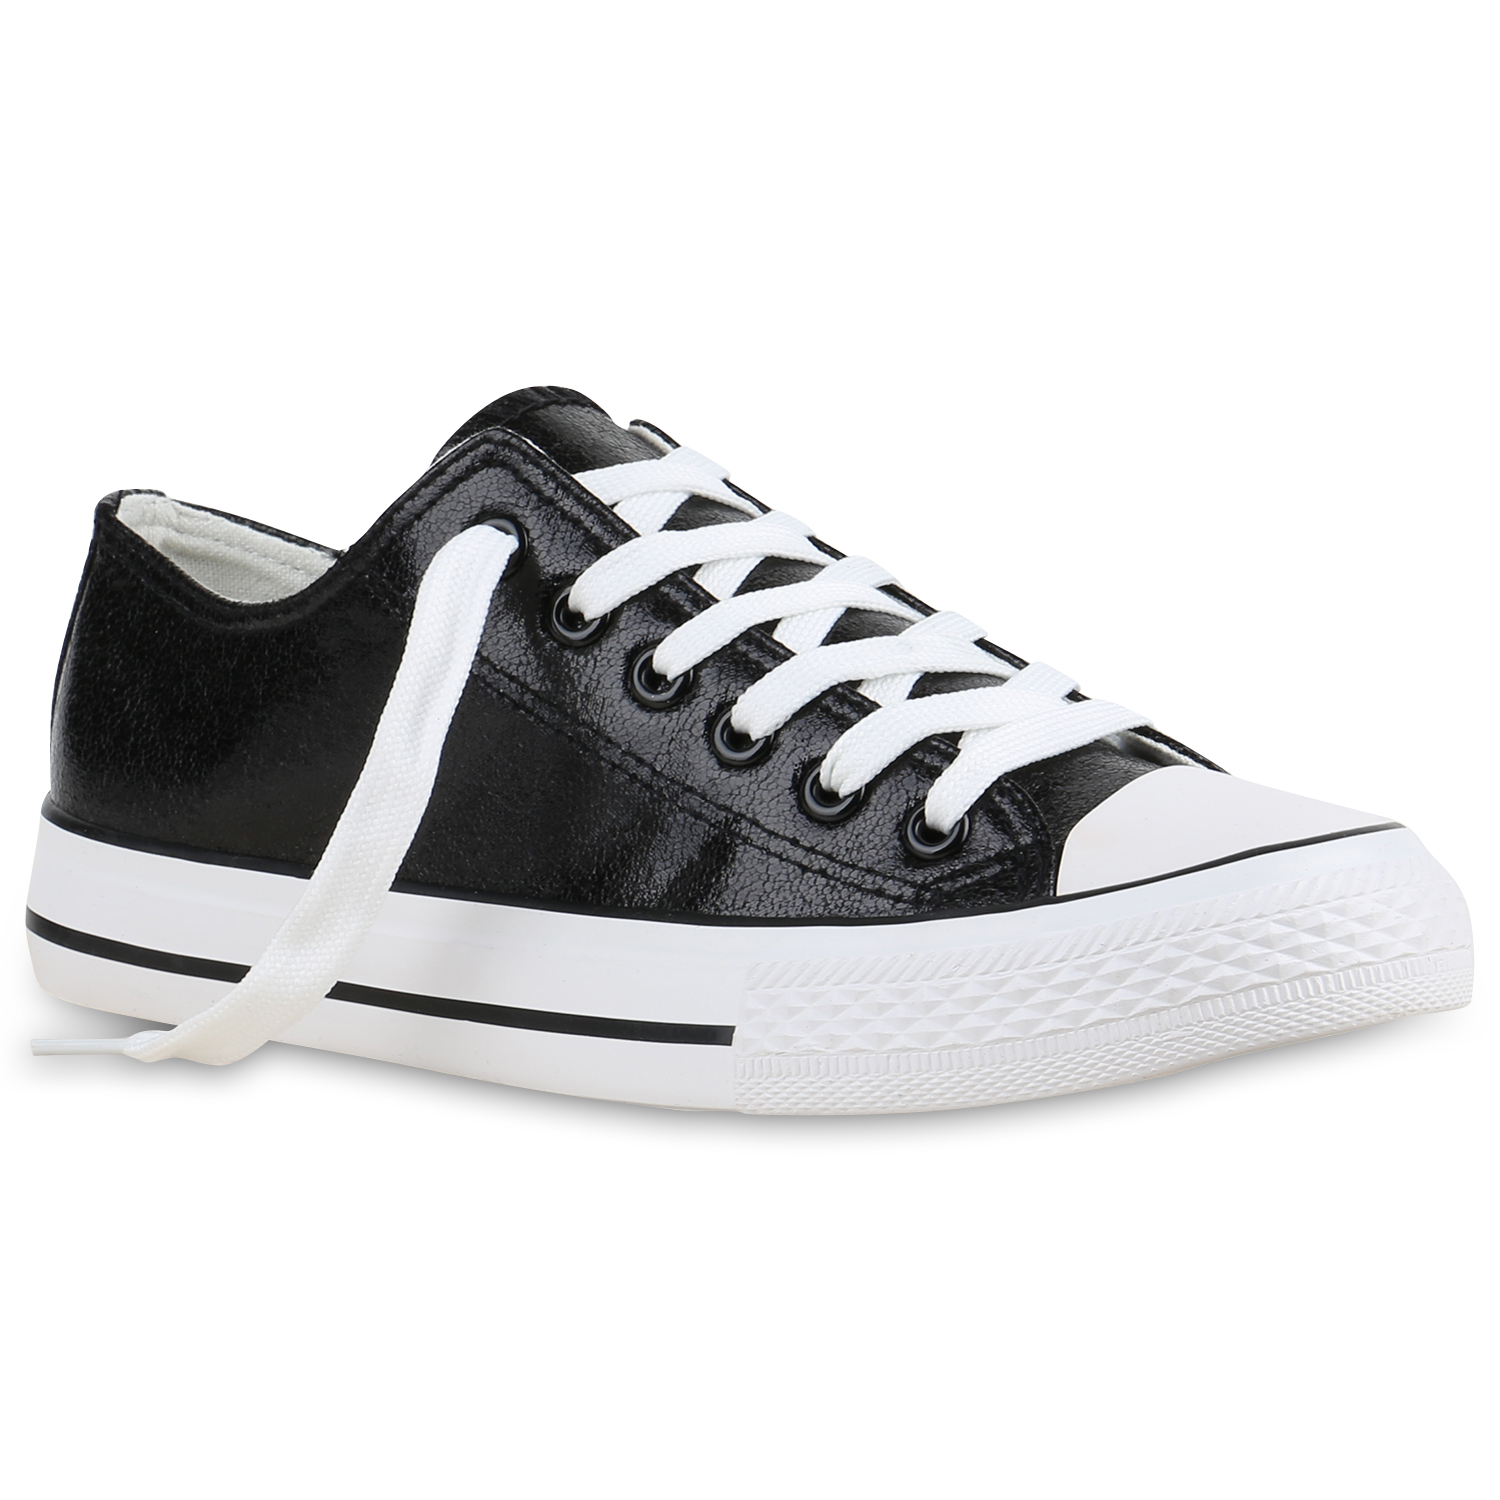 modische damen metallic sneakers low glitzer canvas schuhe 816163 trendy ebay. Black Bedroom Furniture Sets. Home Design Ideas